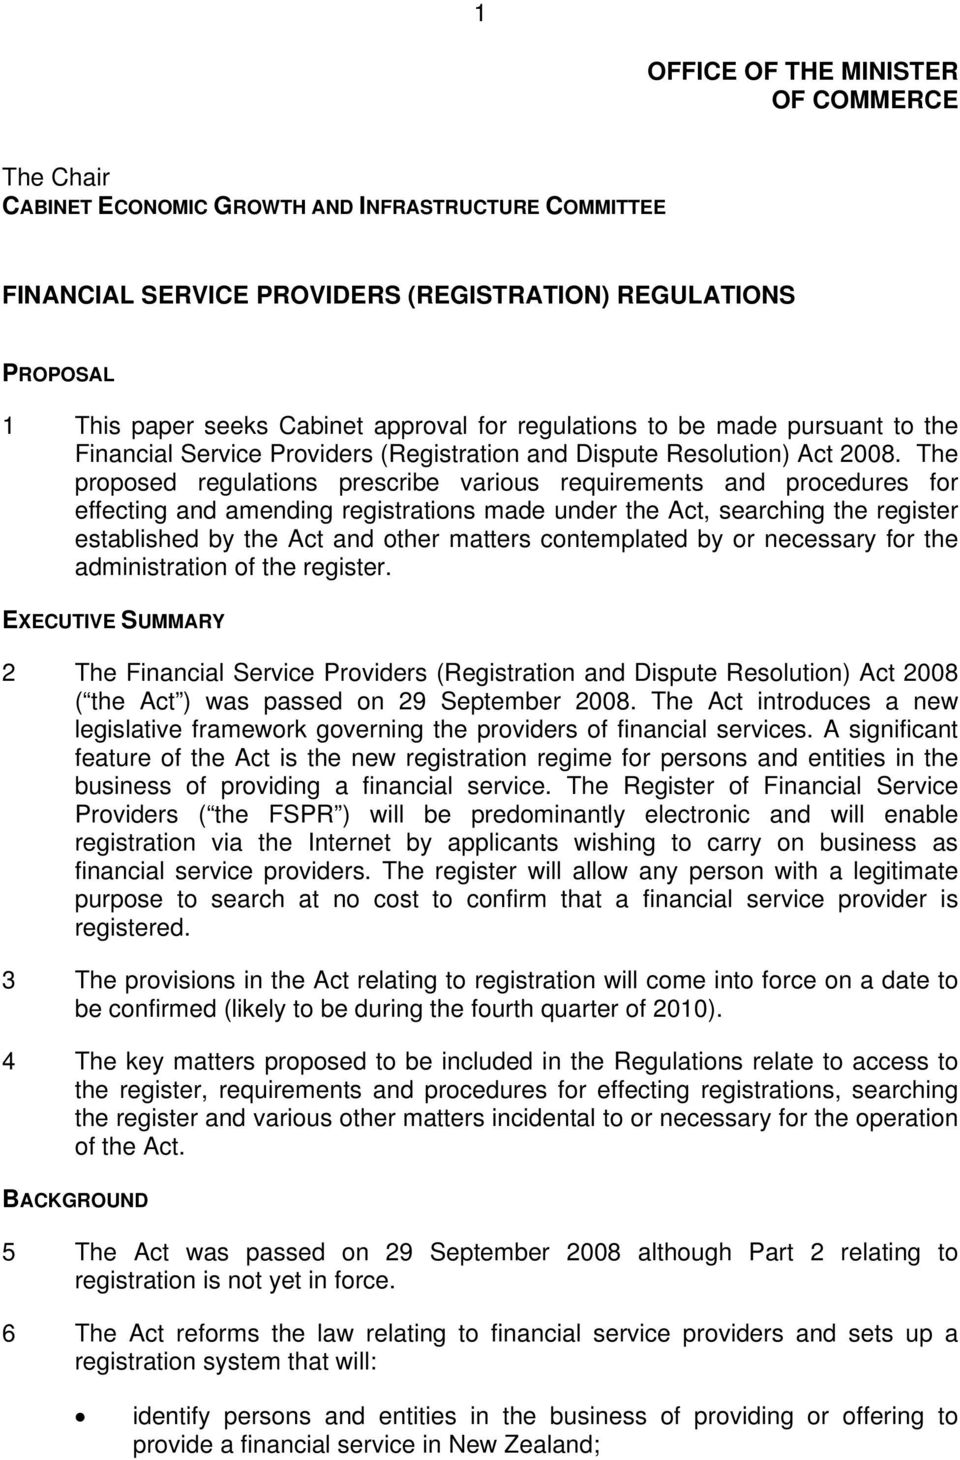 The proposed regulations prescribe various requirements and procedures for effecting and amending registrations made under the Act, searching the register established by the Act and other matters